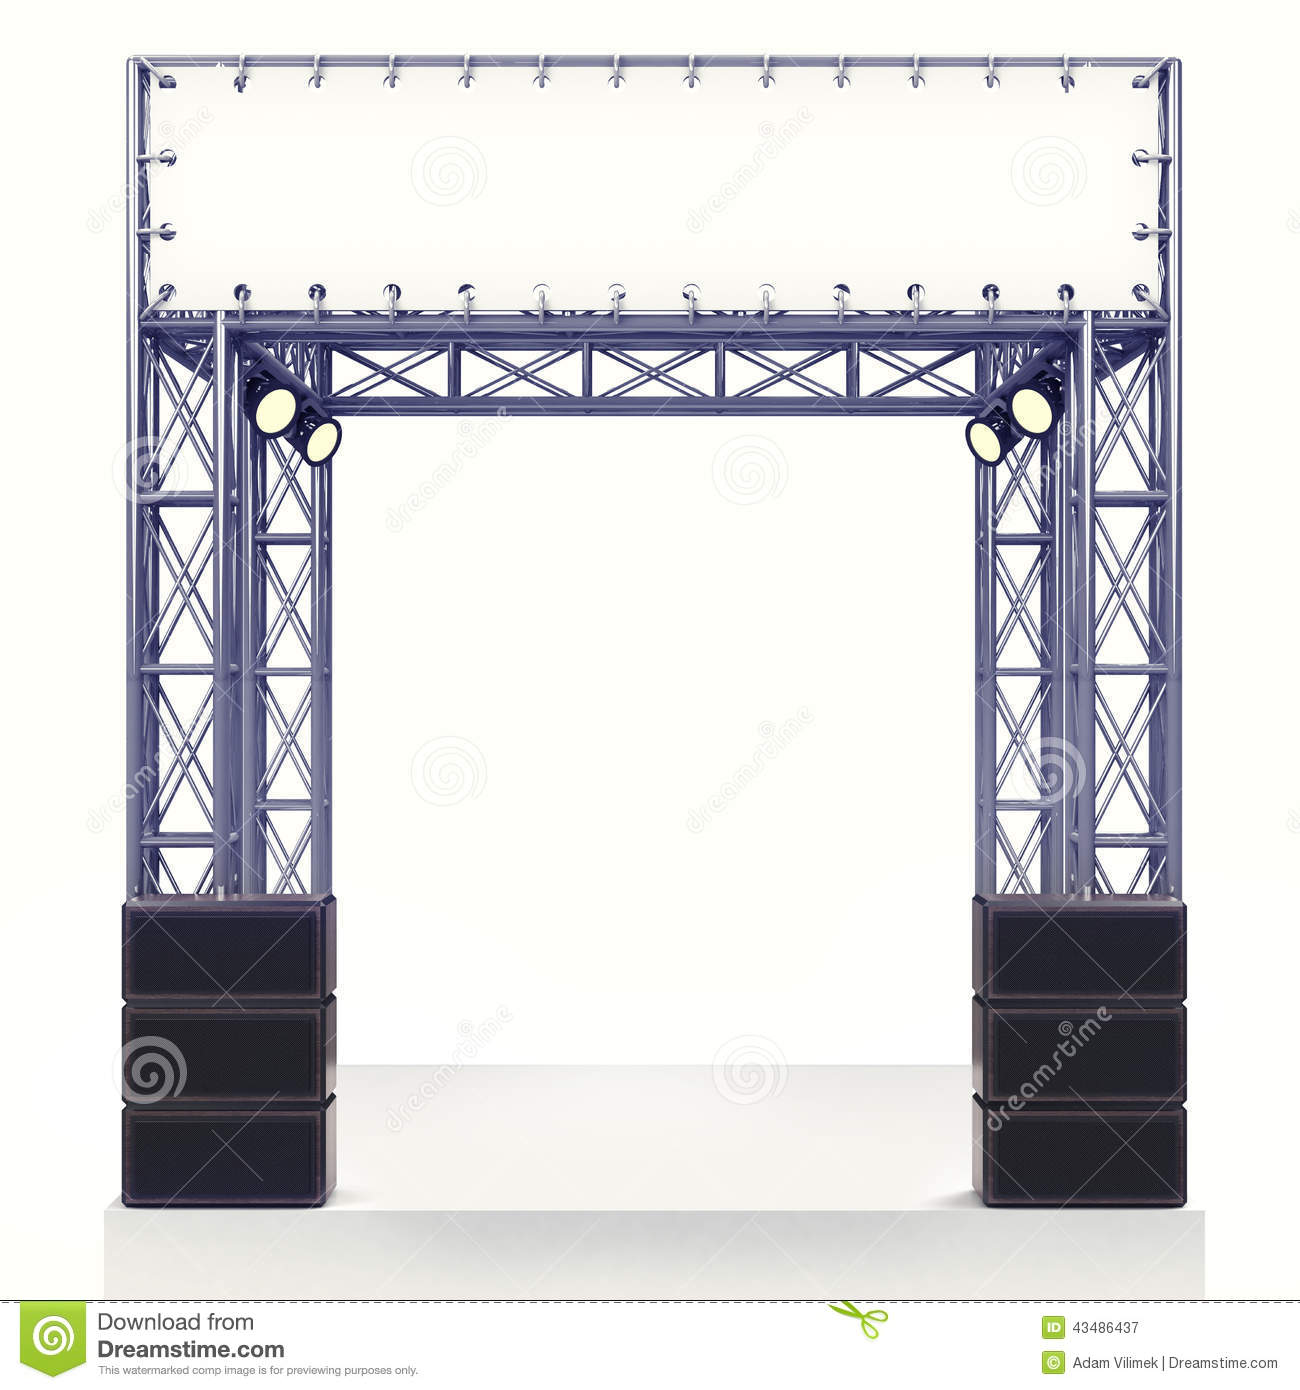 Staging Of Steel Images : Performance stage steel construction with speaker on white